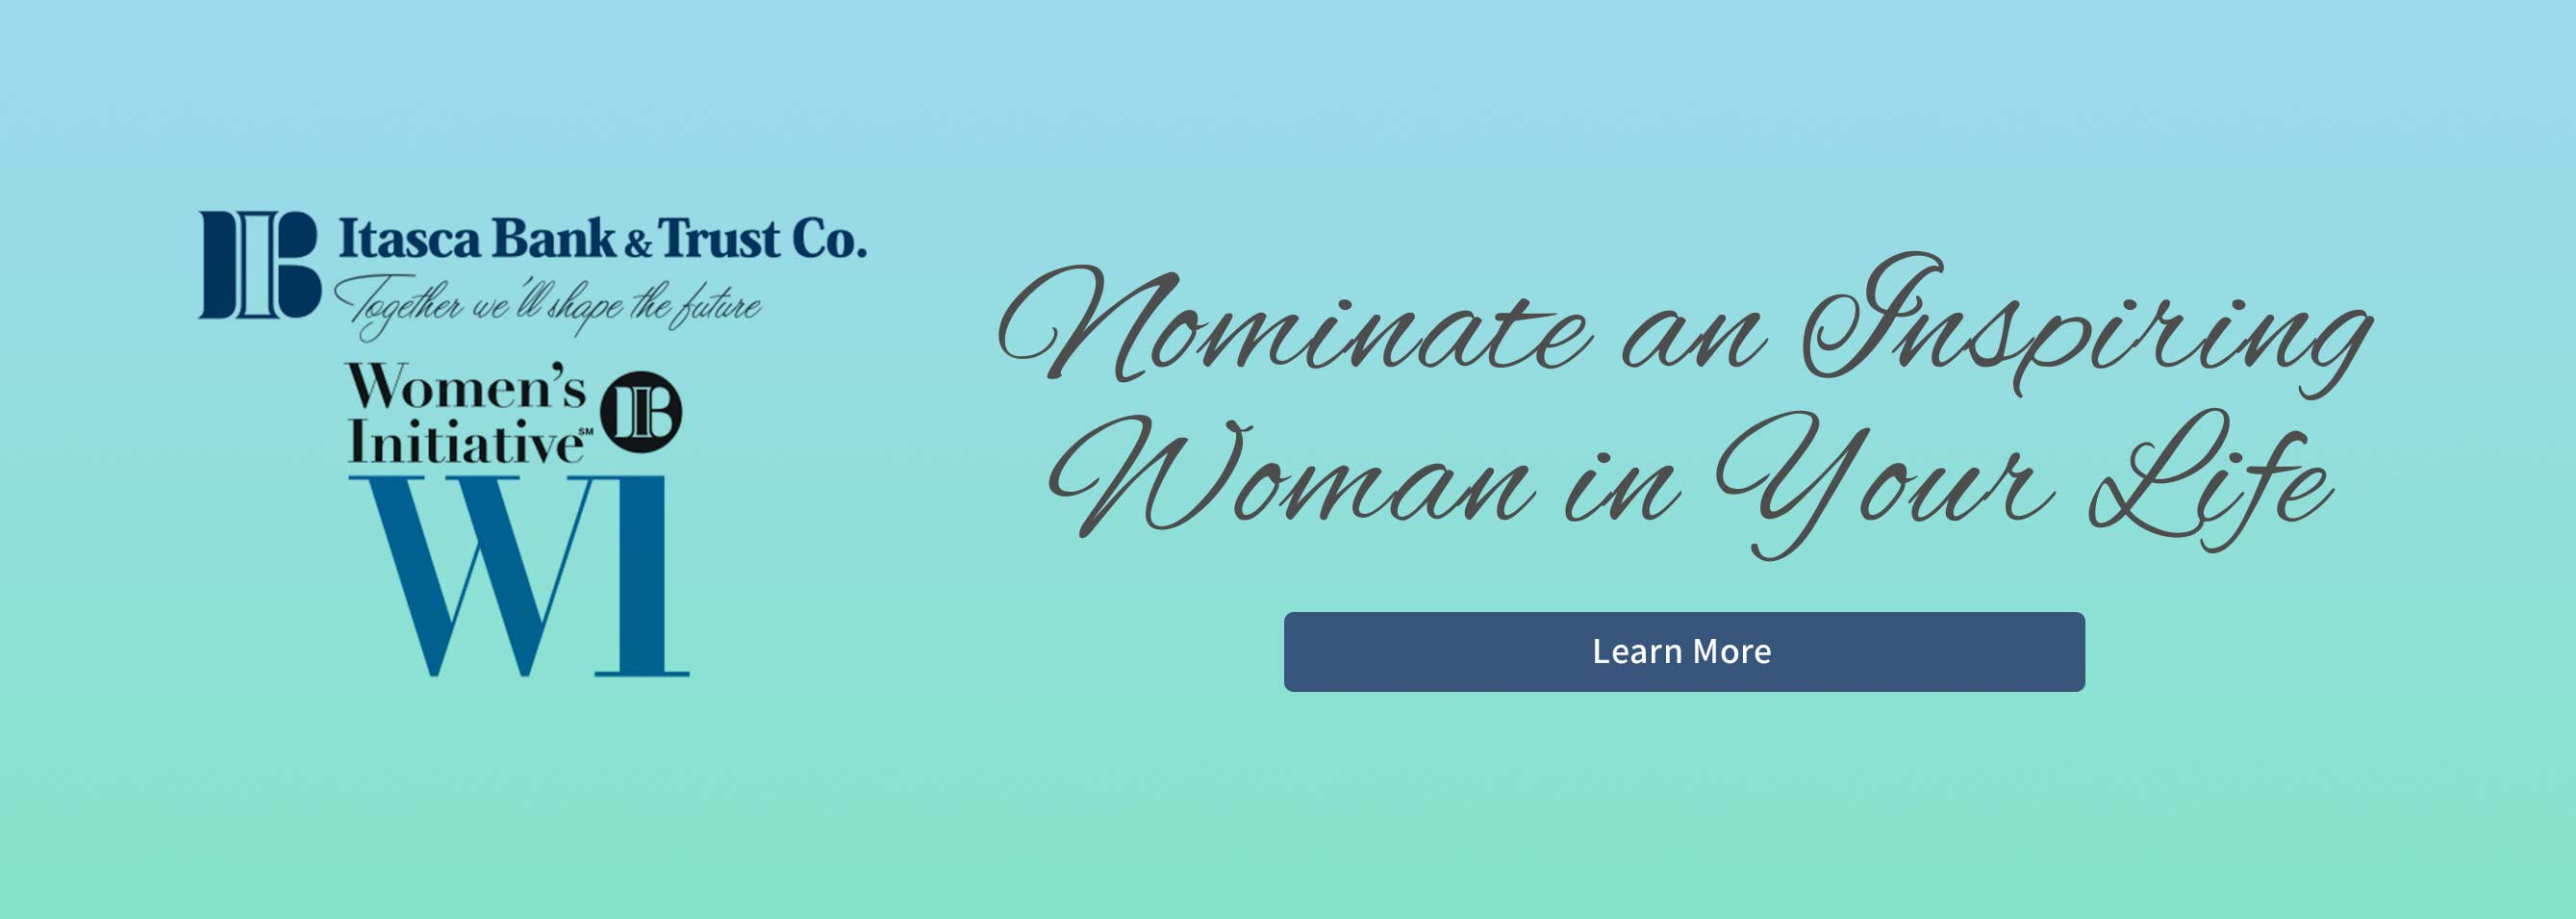 Itasca Bank and Trust Co. Women's Initiative WI. Nominate an inspiring woman in your life. Learn More